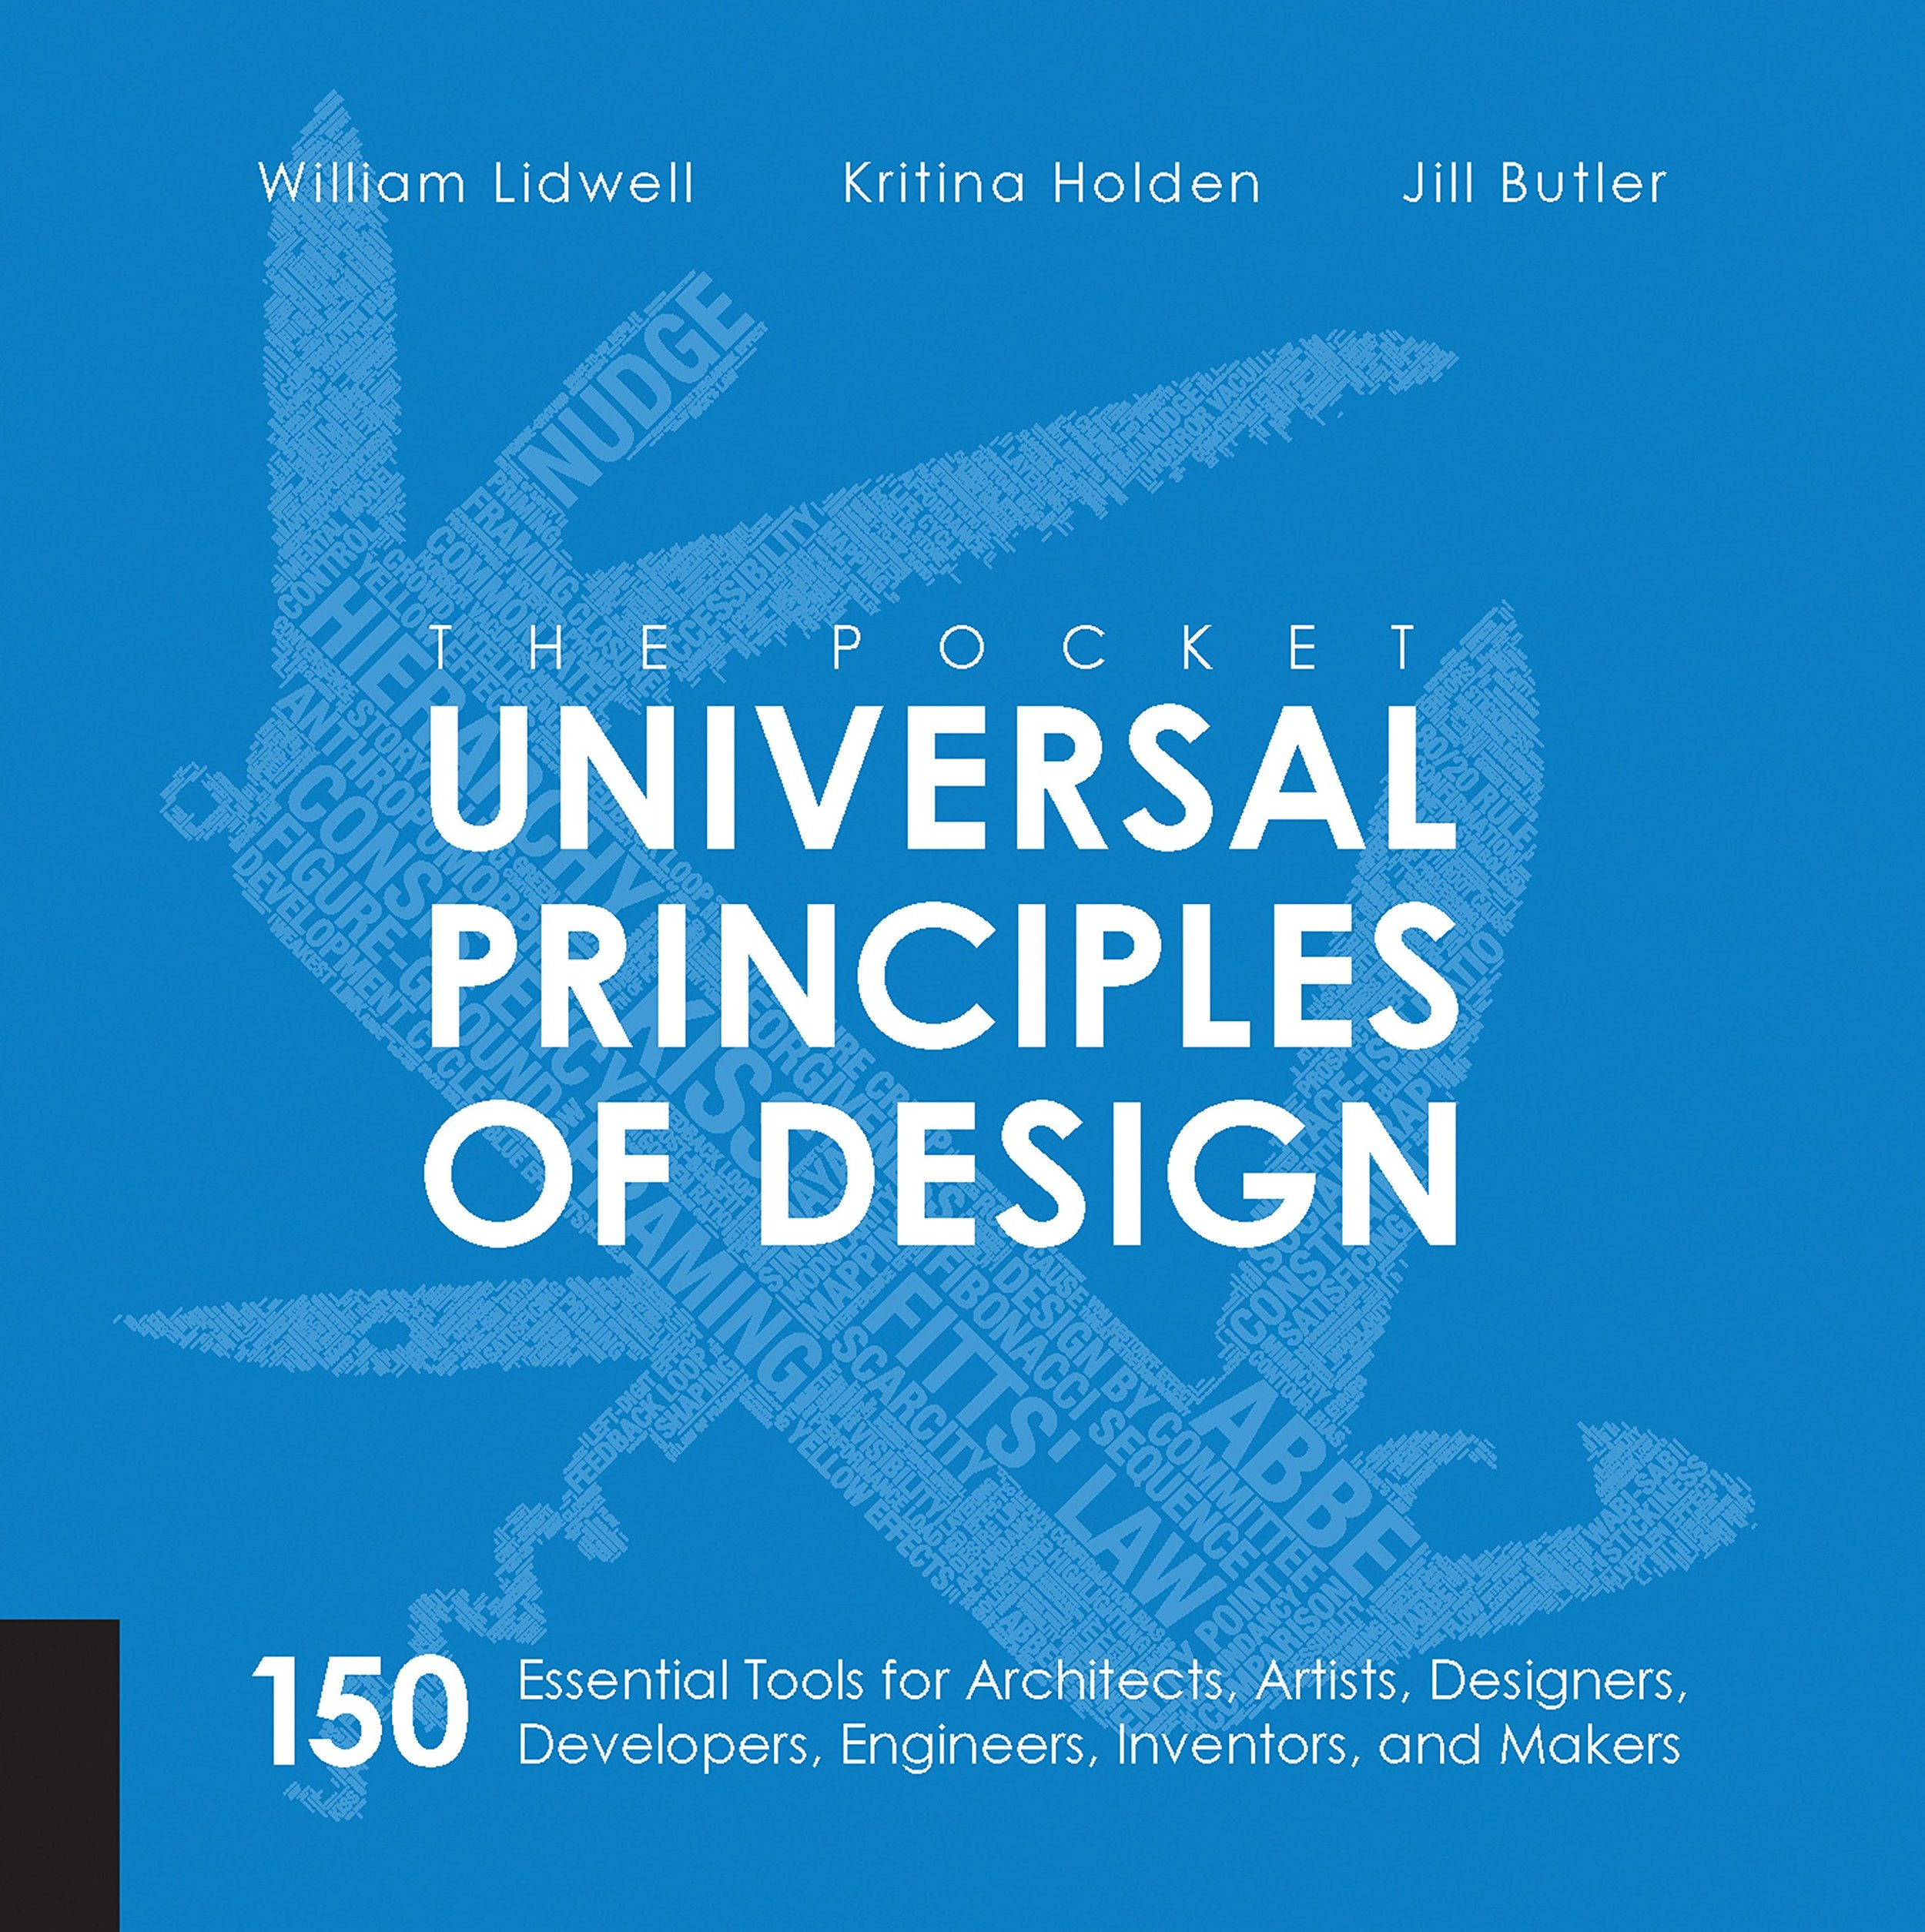 The Pocket Universal Principles of Design: 150 Essential Tools for Architects, Artists, Designers, Developers, Engineers, Inventors, and Makers by William Lidwell